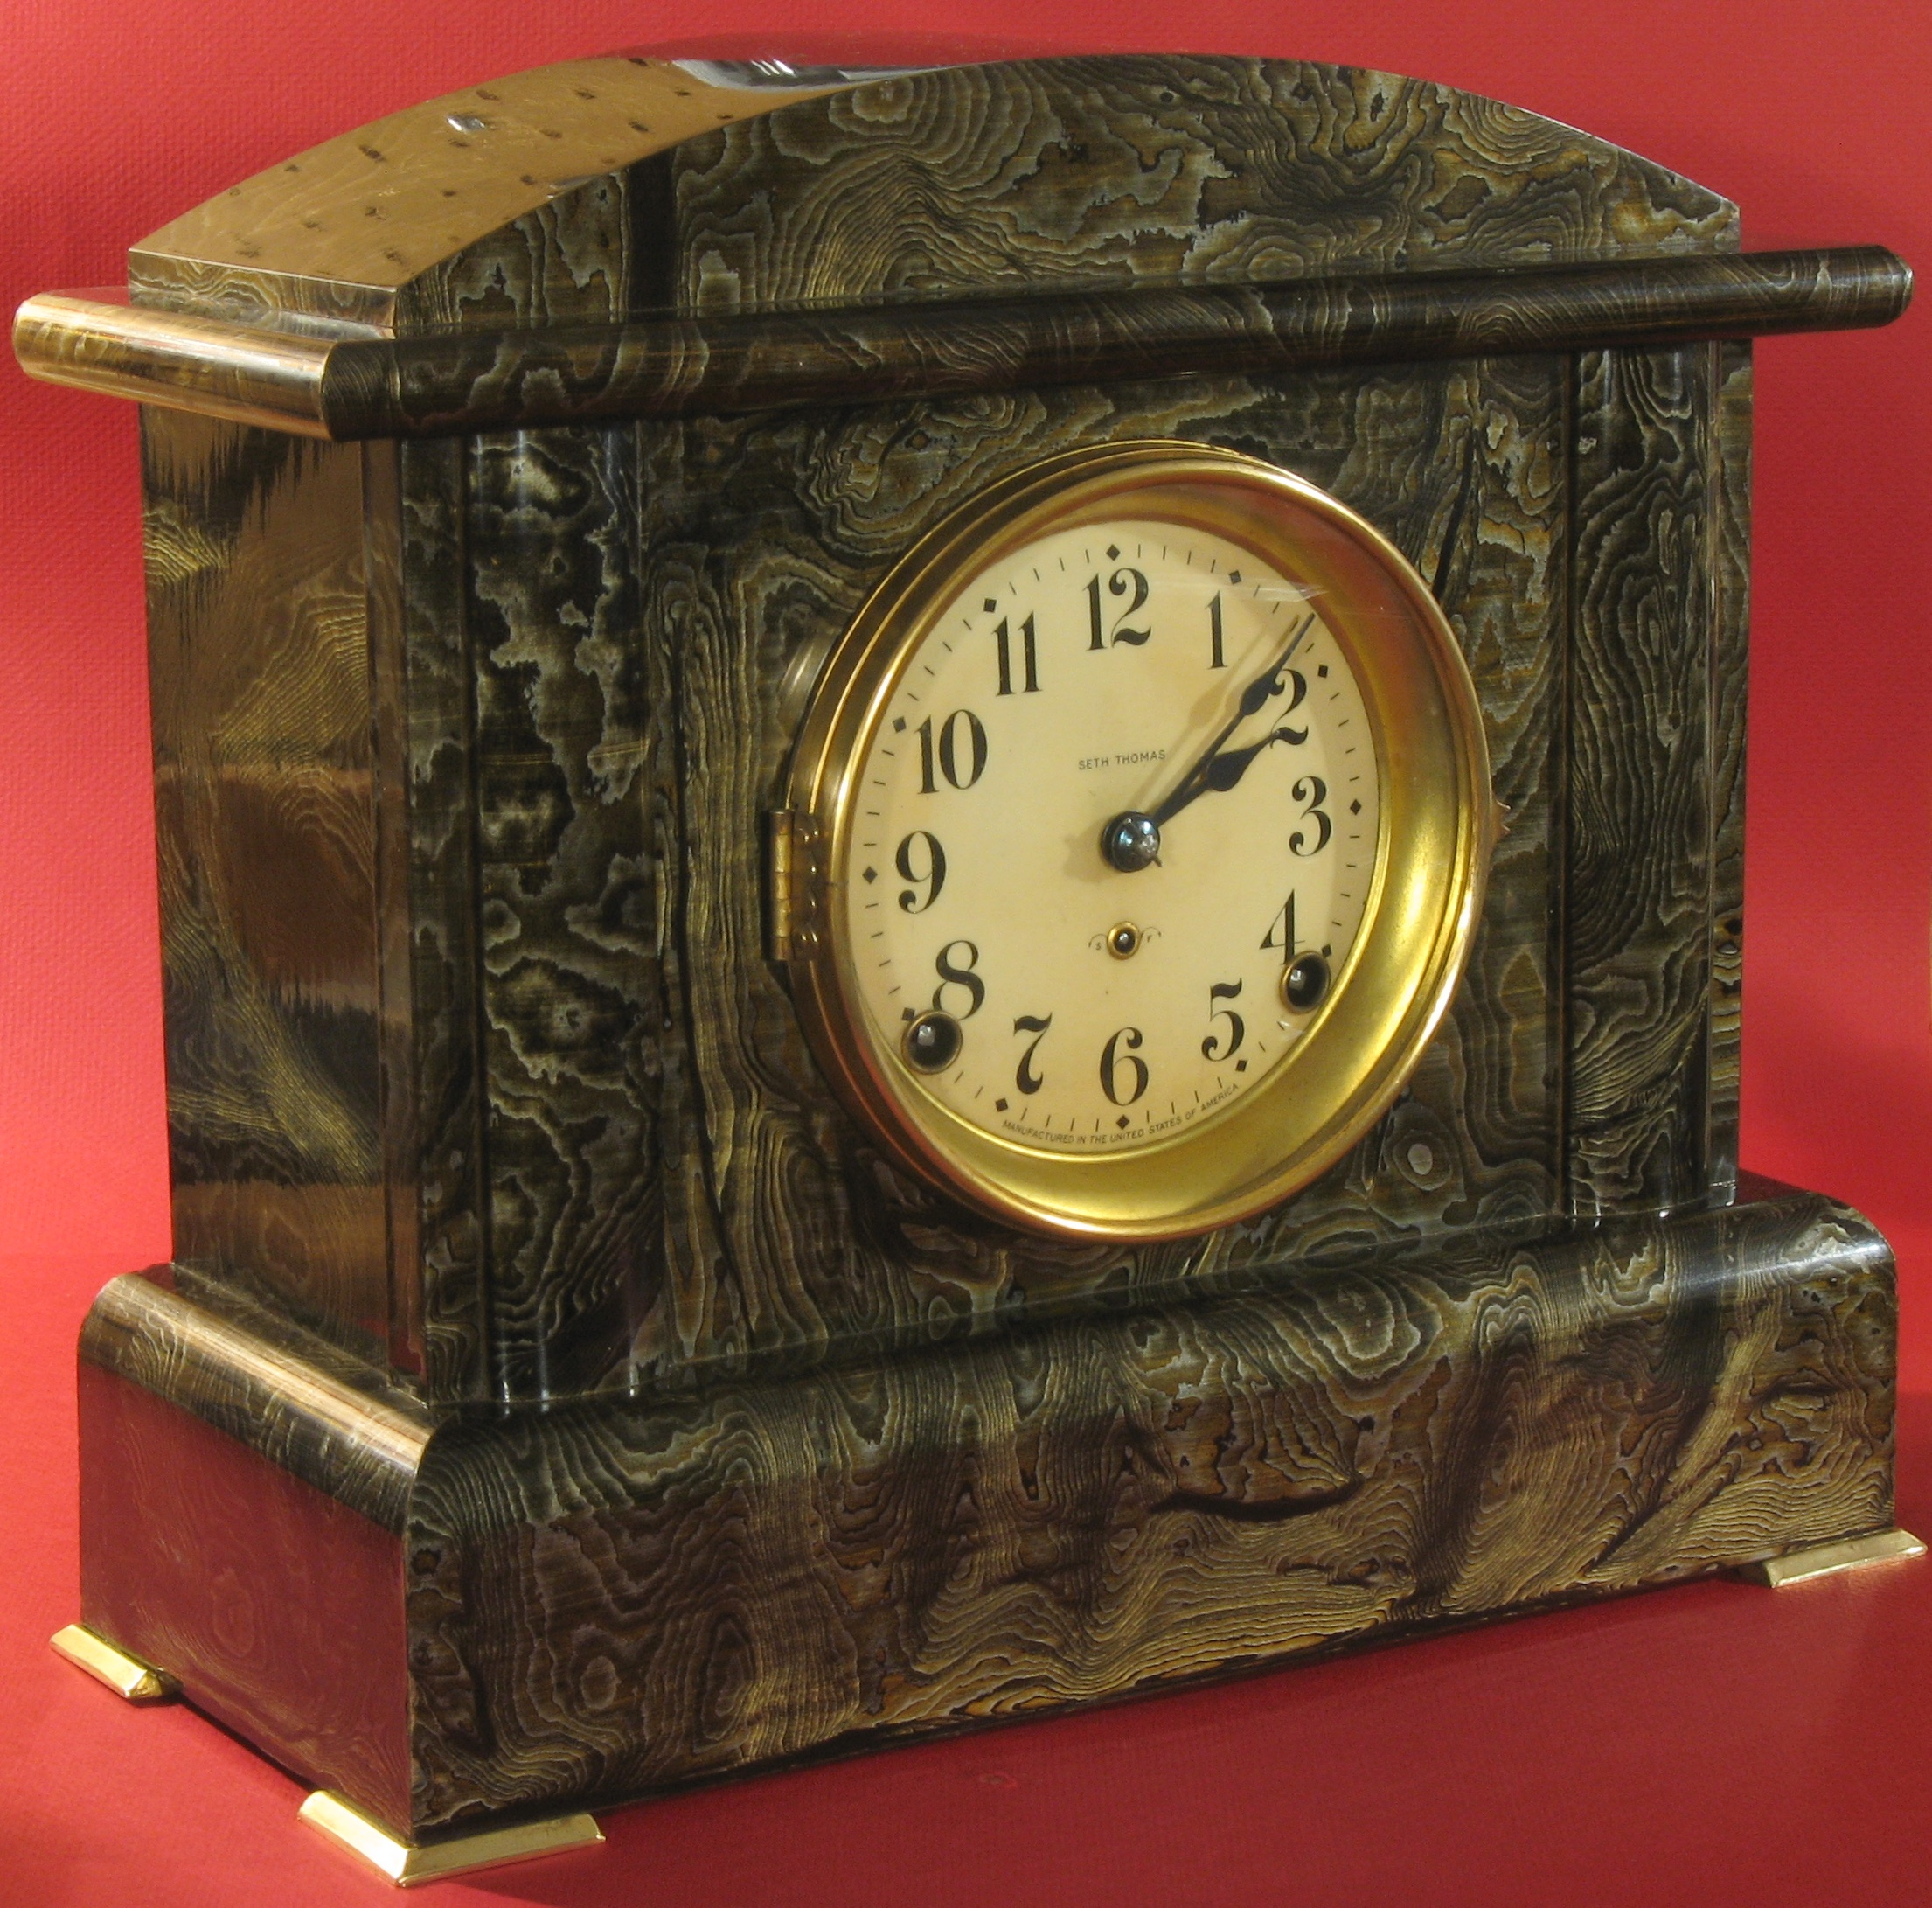 Dating celluloid clocks